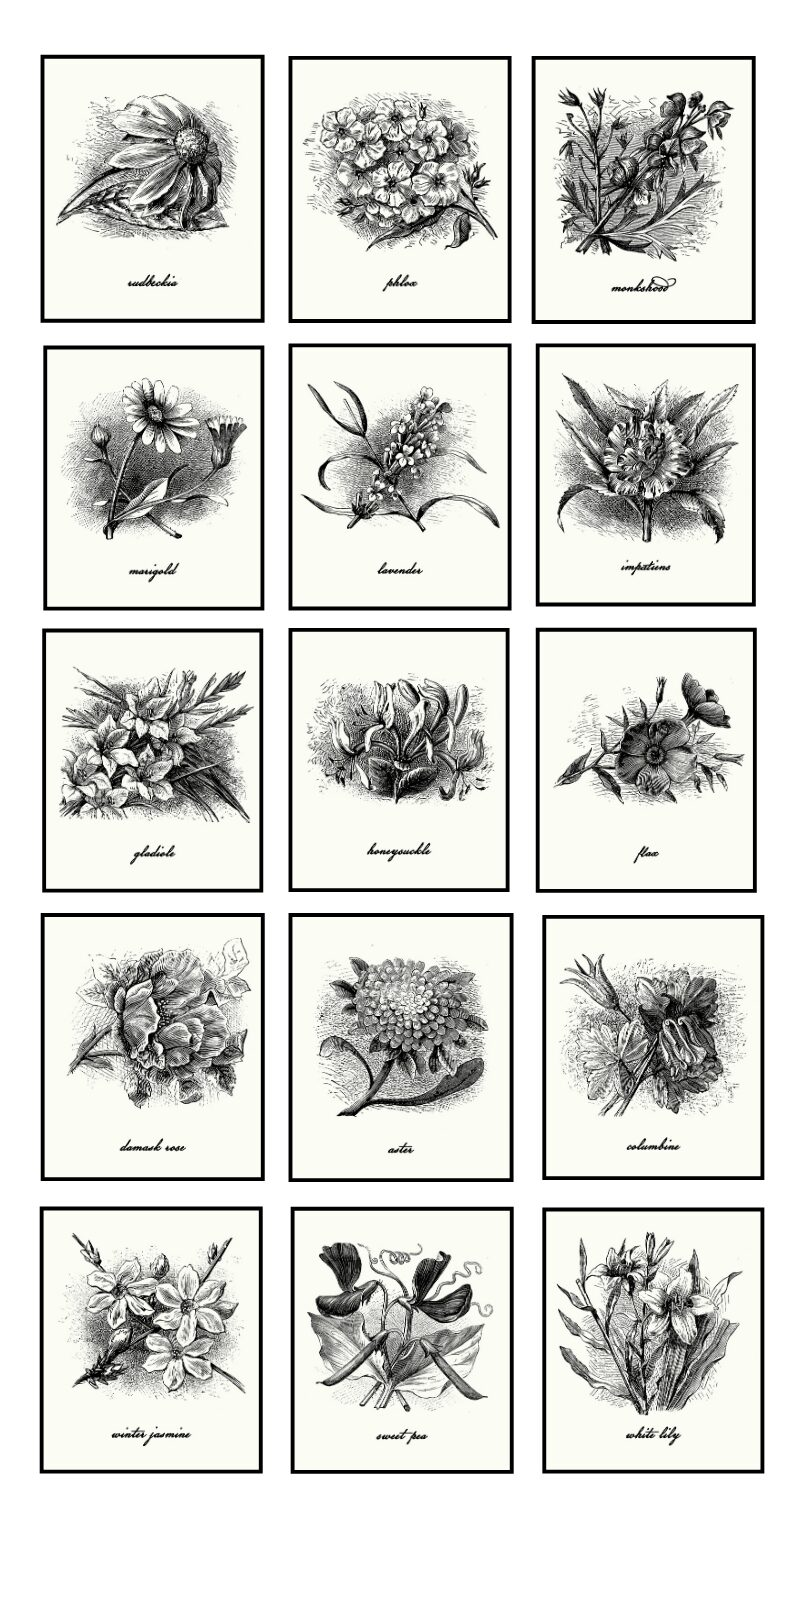 15 Vintage Black and White Farmhouse Style Botanical Prints